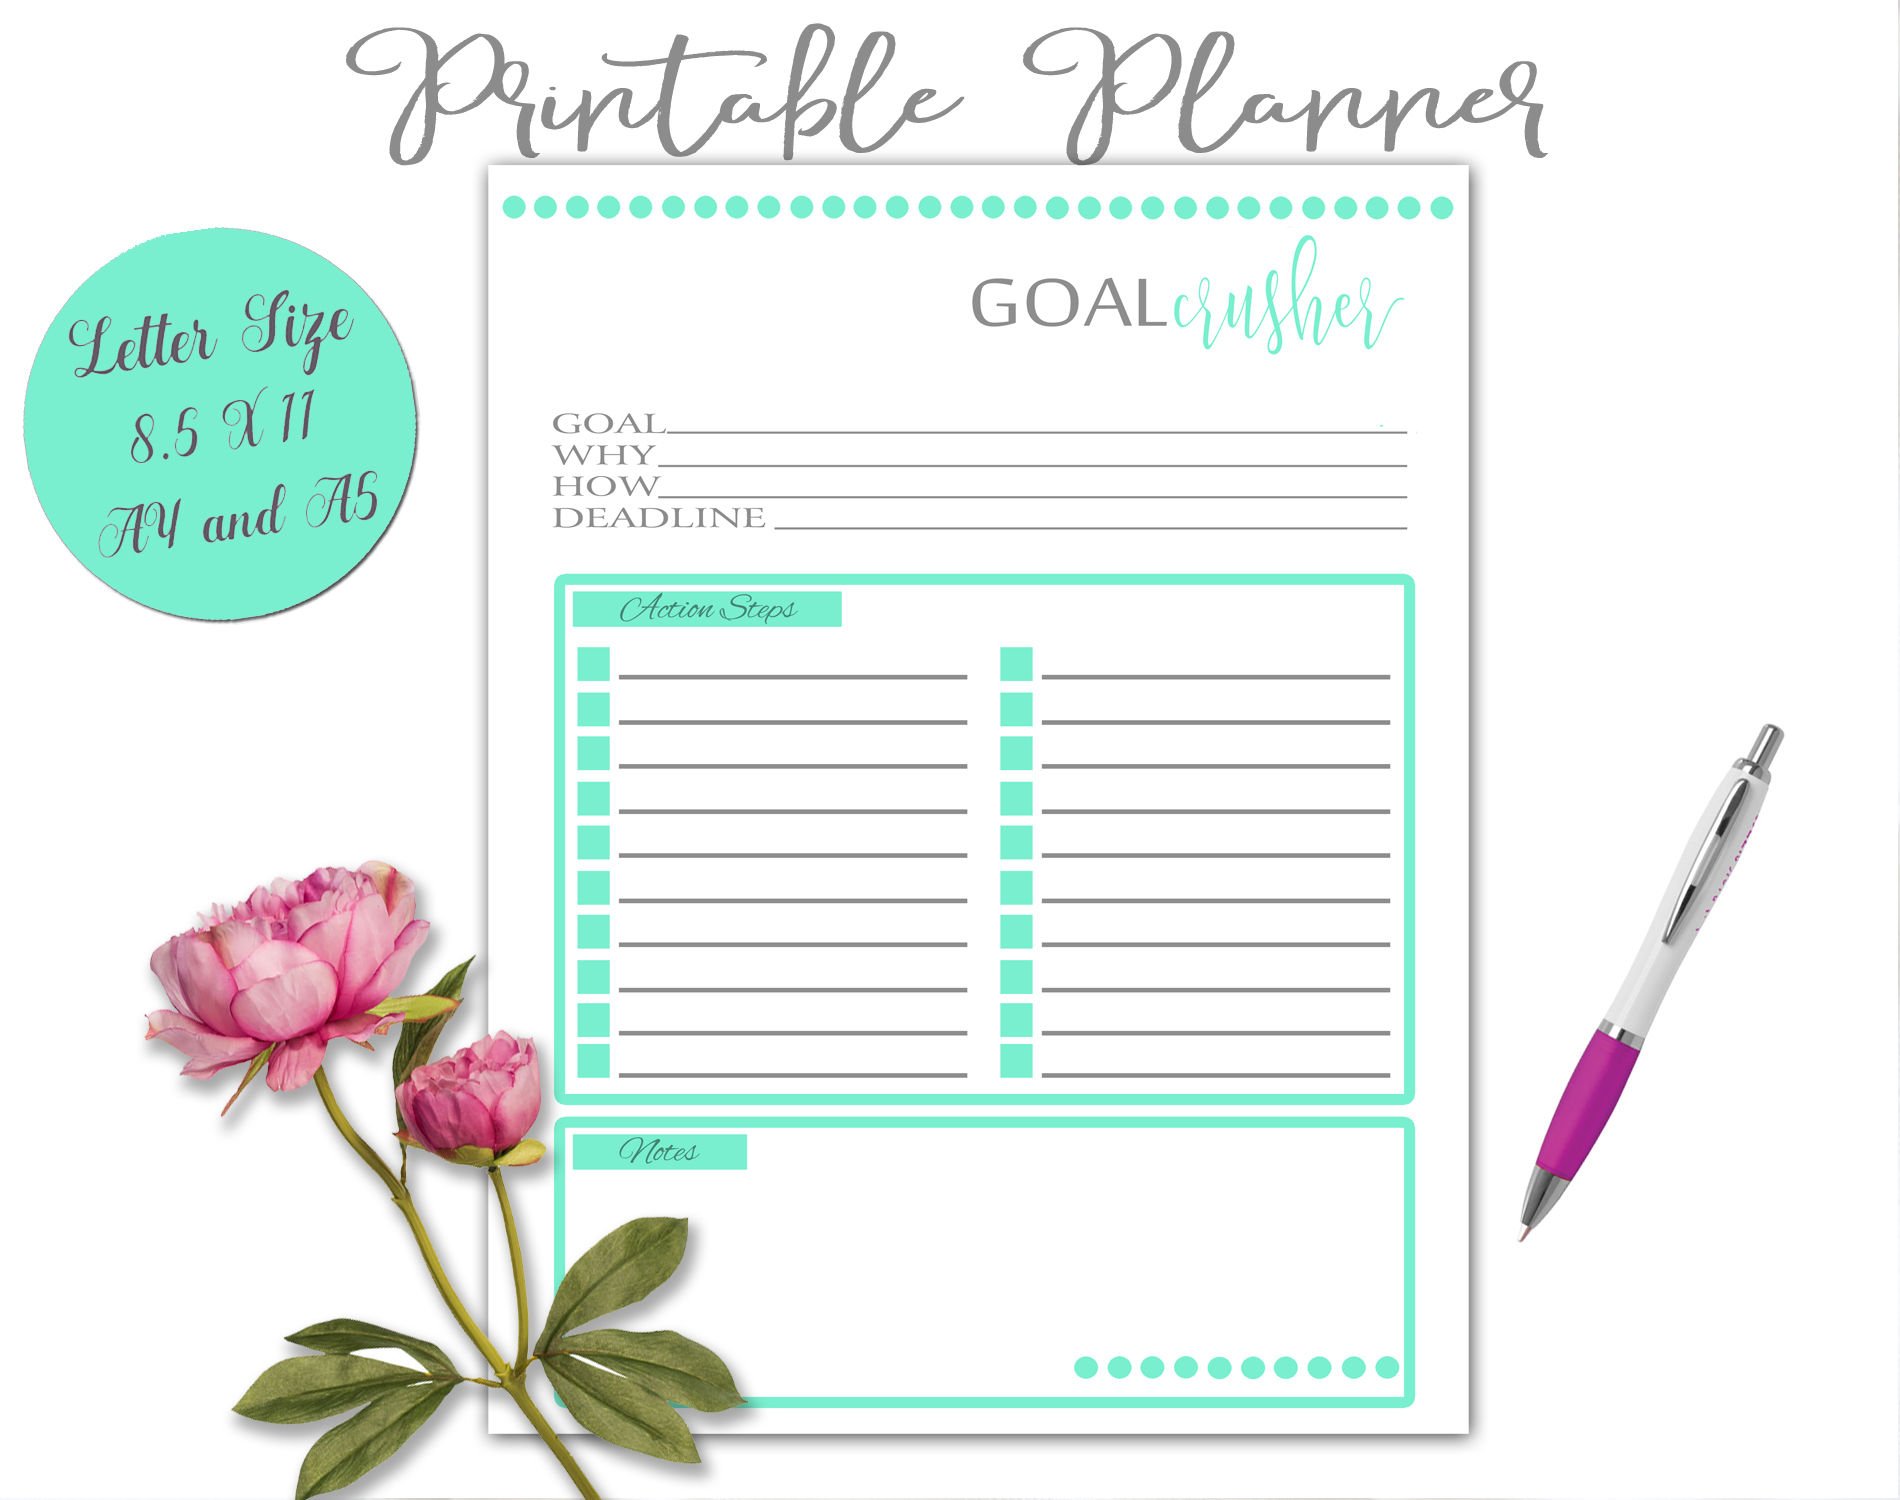 Printable Daily Weekly Monthly Planner Sheets example image 7